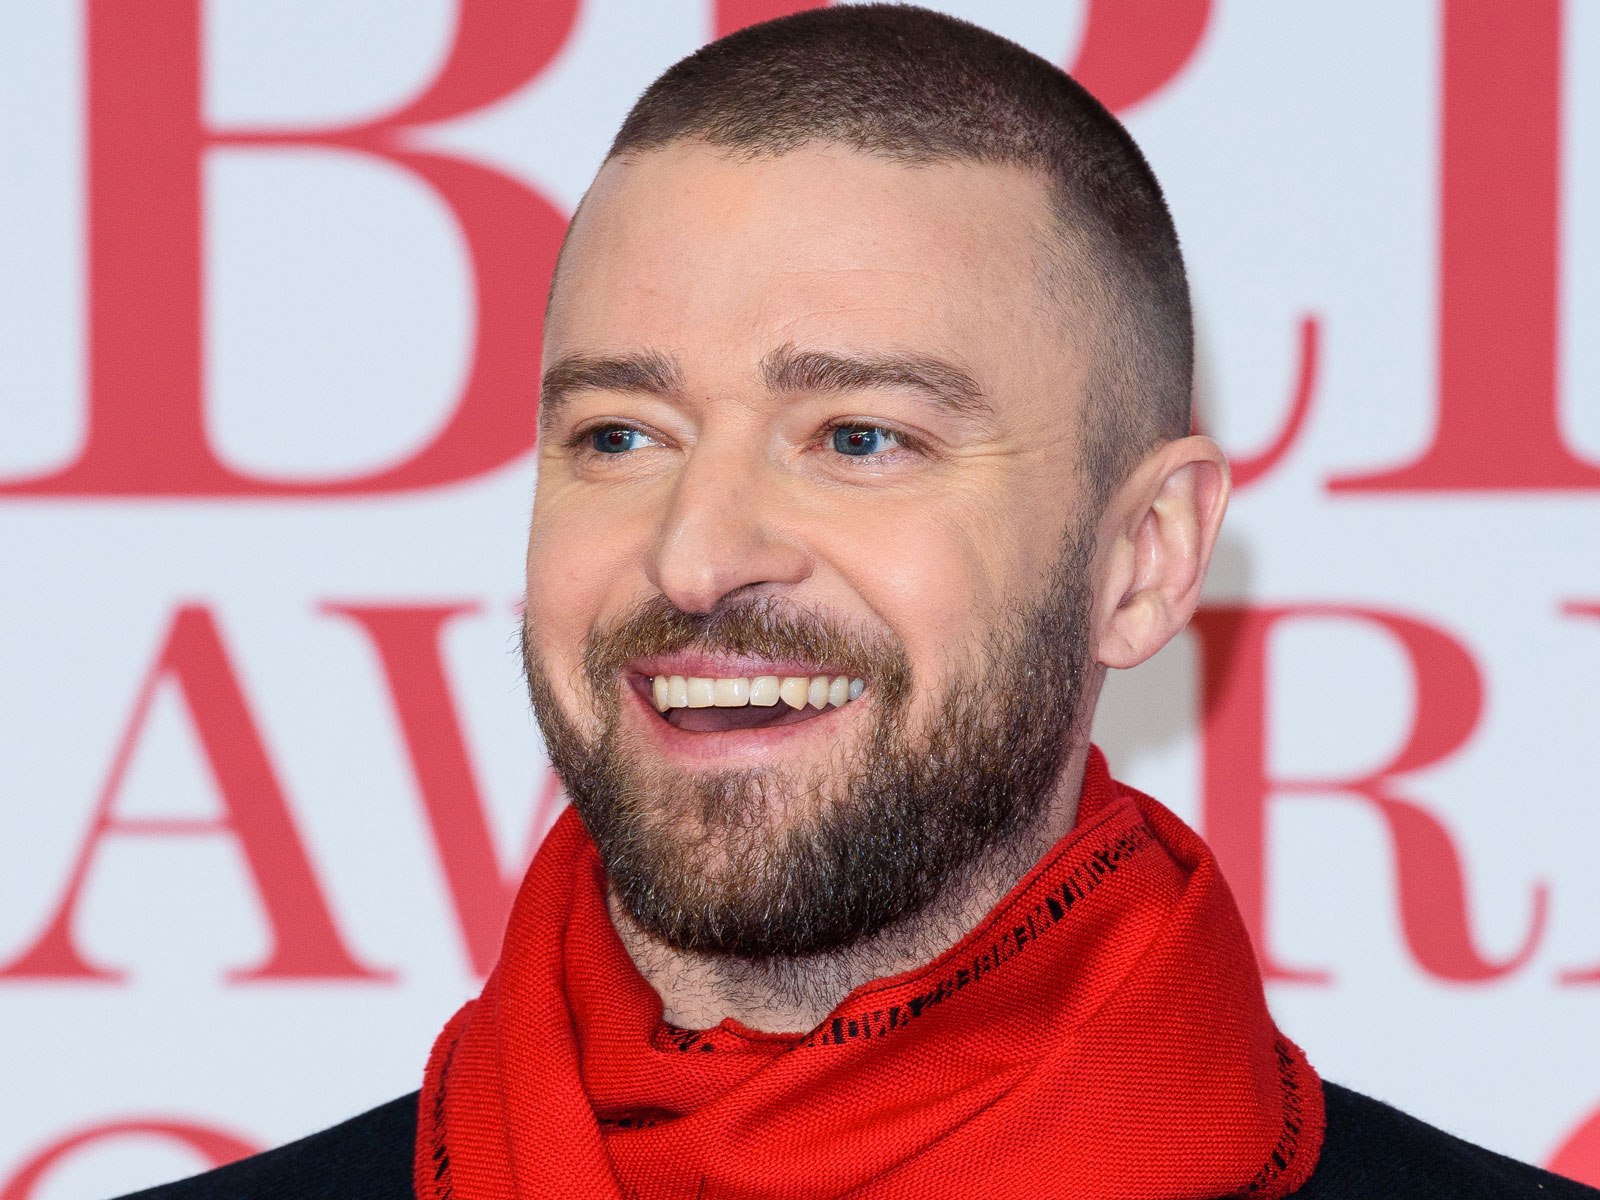 justin timberlake - photo #37